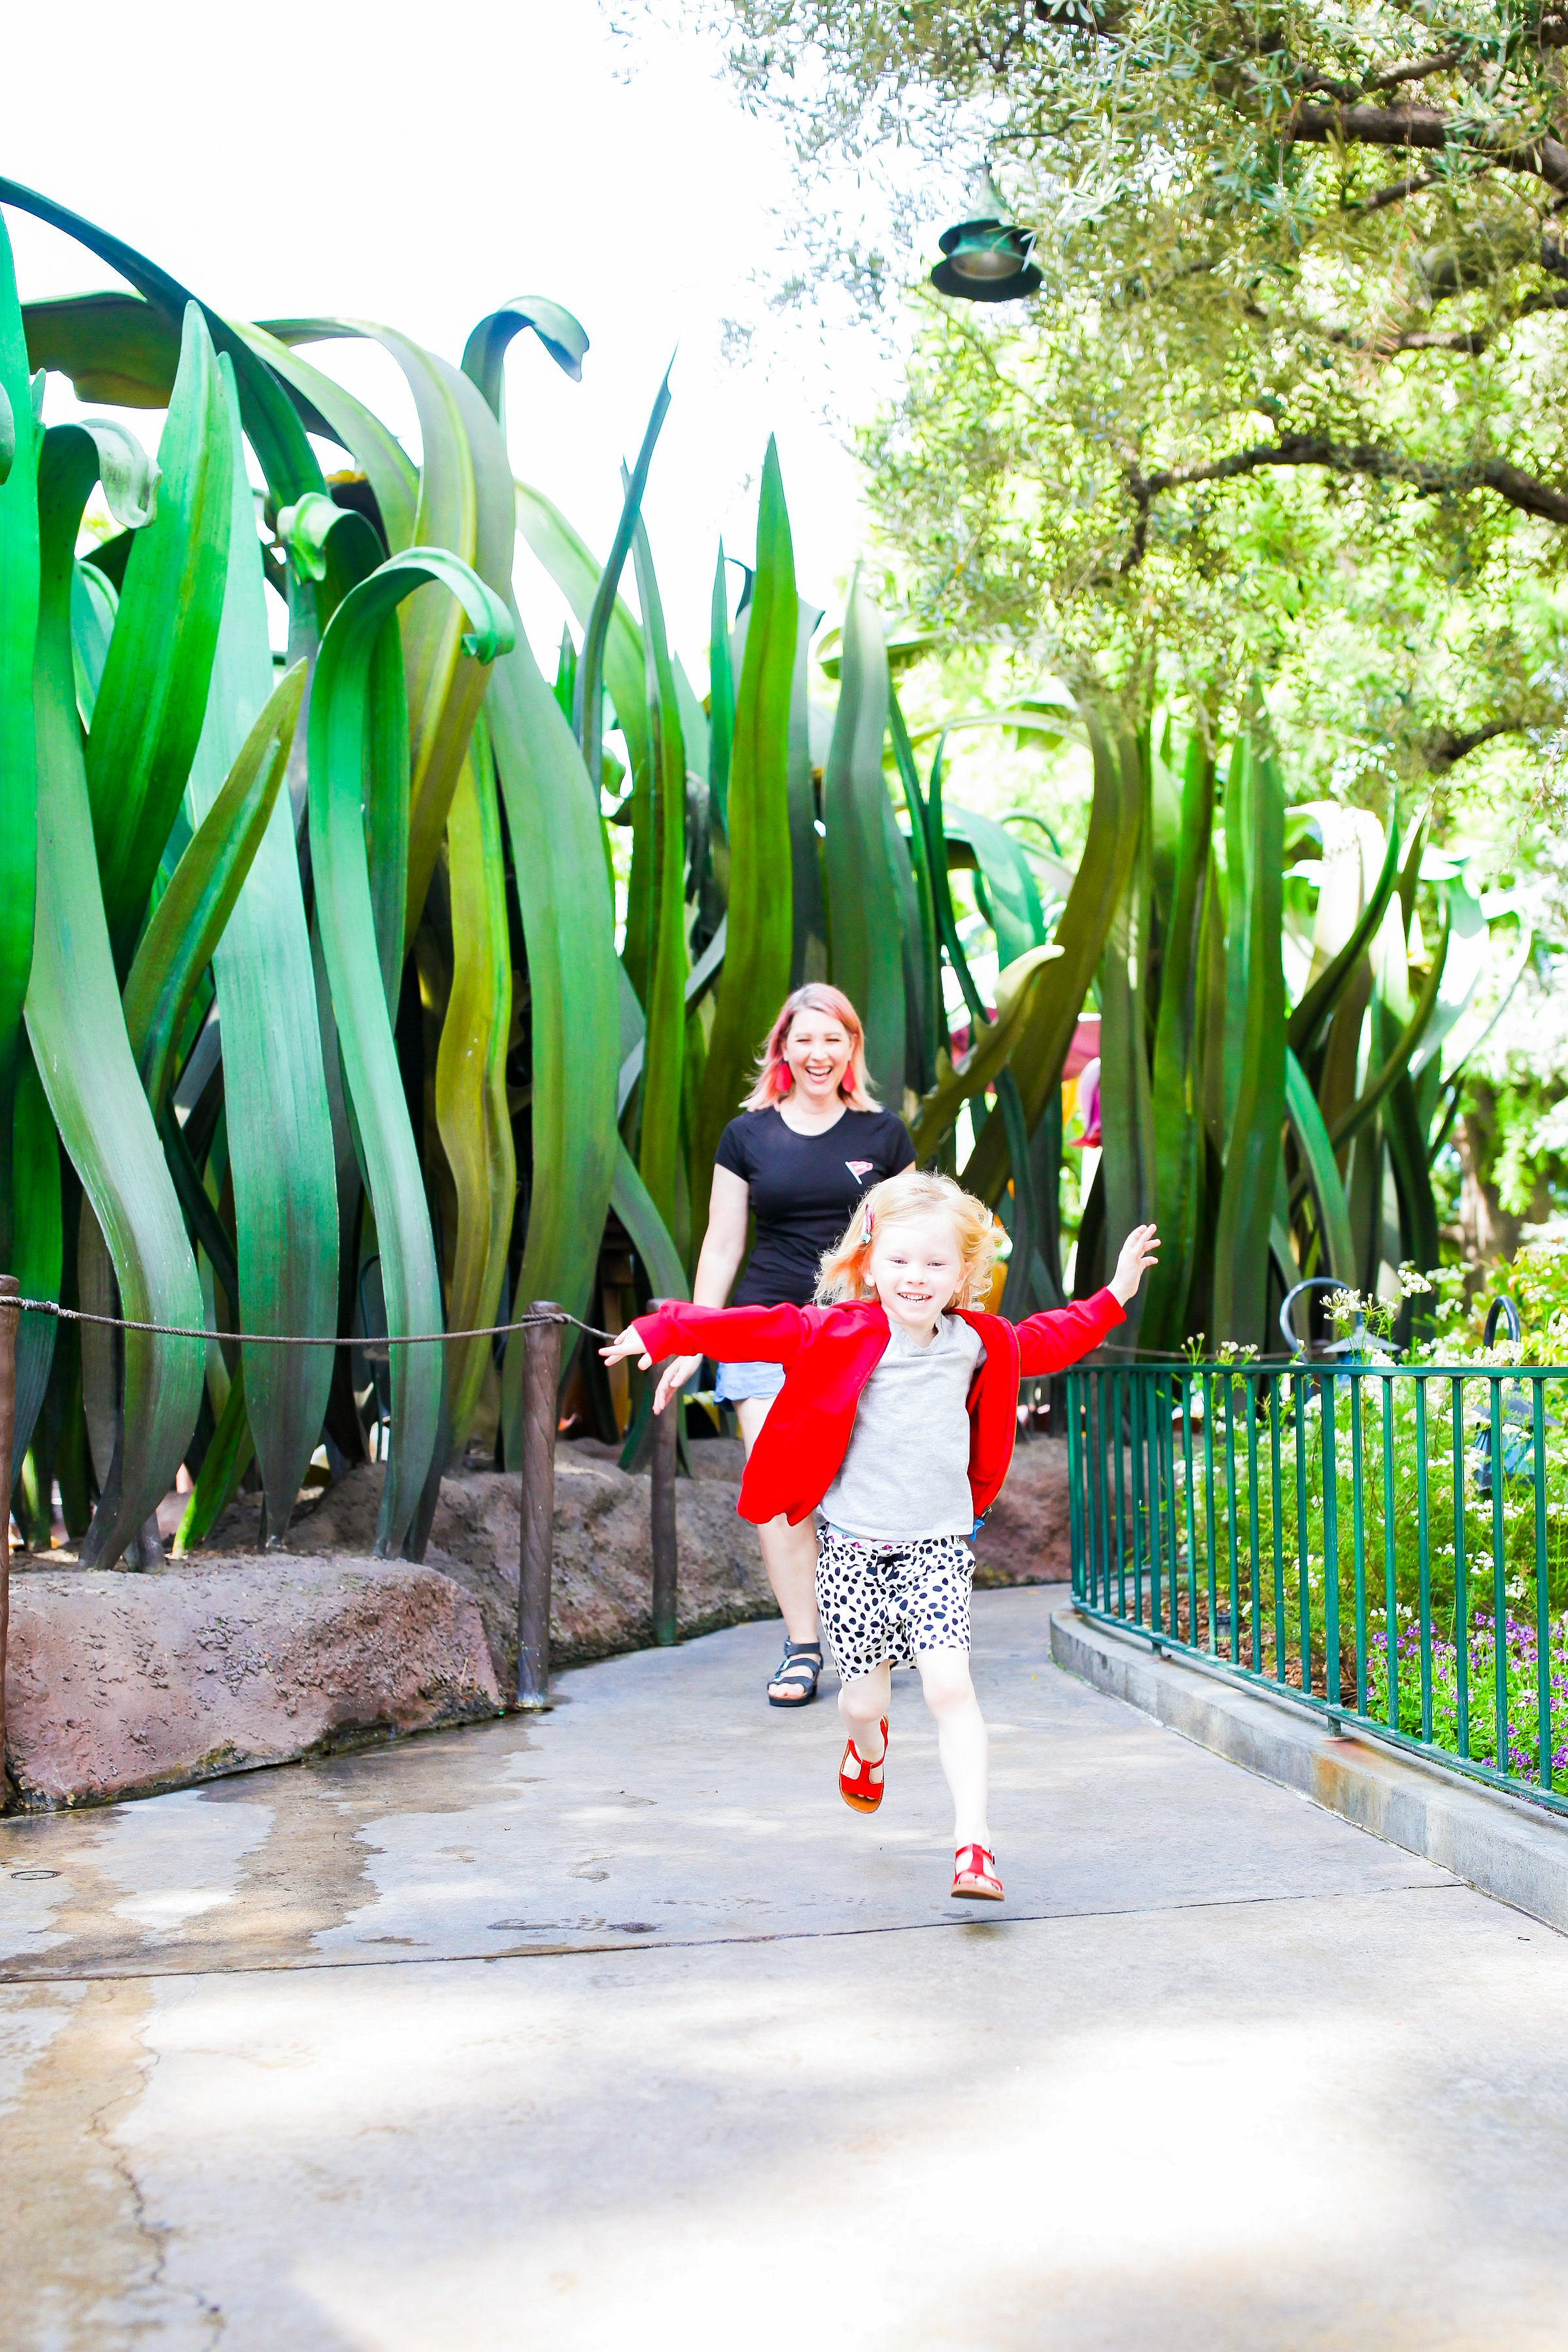 Disneyland Secrets: These 13 spots inside Disneyland are perfect for escaping the heat on hot days!